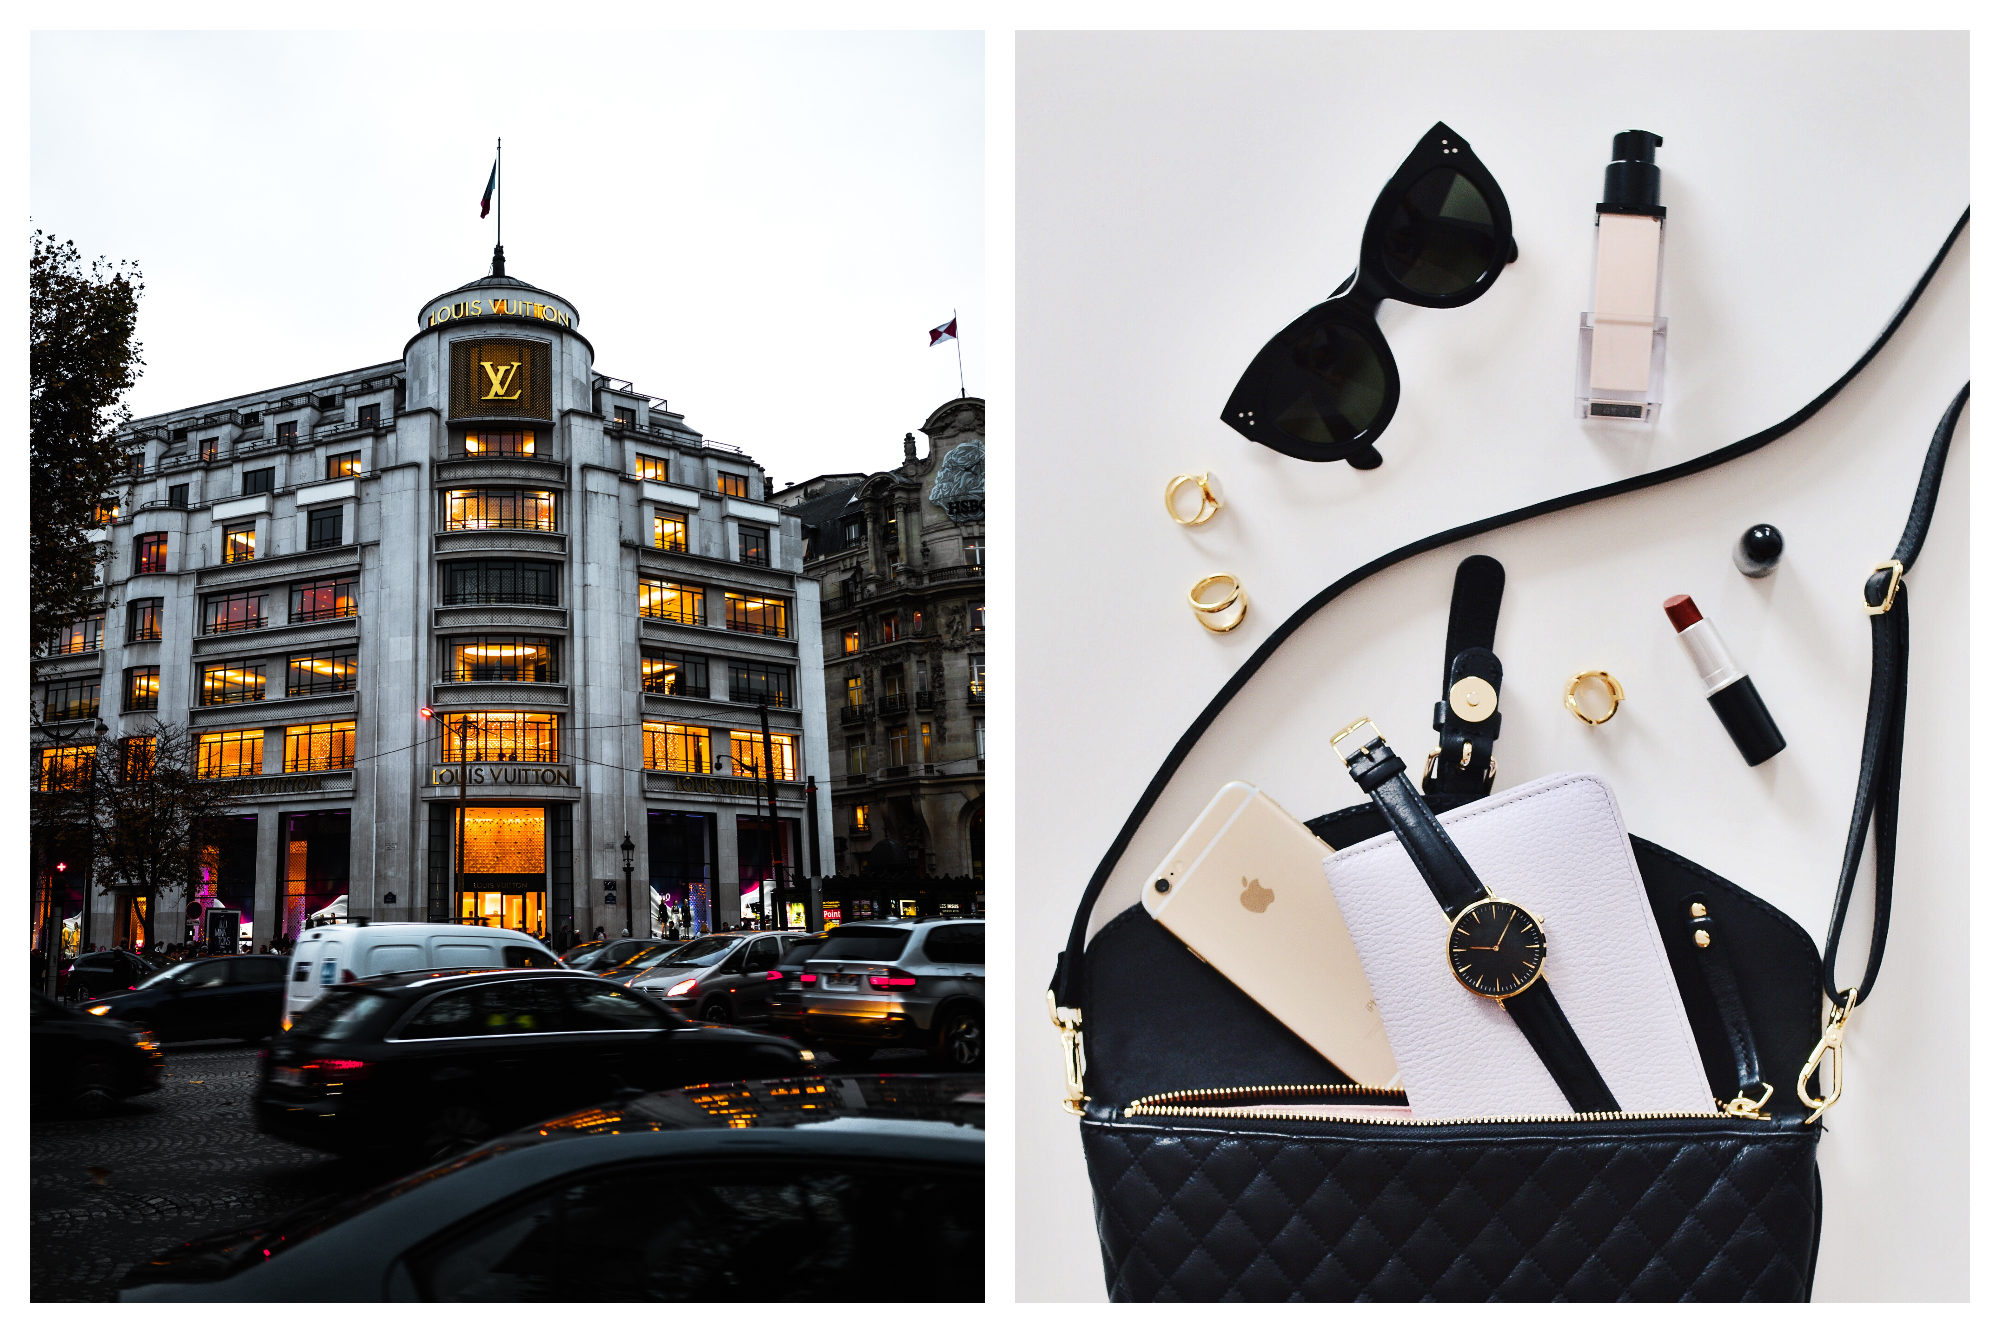 Louis Vuitton on the Champs Elysées is the temple of shopping in Paris with queues often snaking right around the corner (left). Make sure you know where to shop in Paris for your makeup essentials (right).